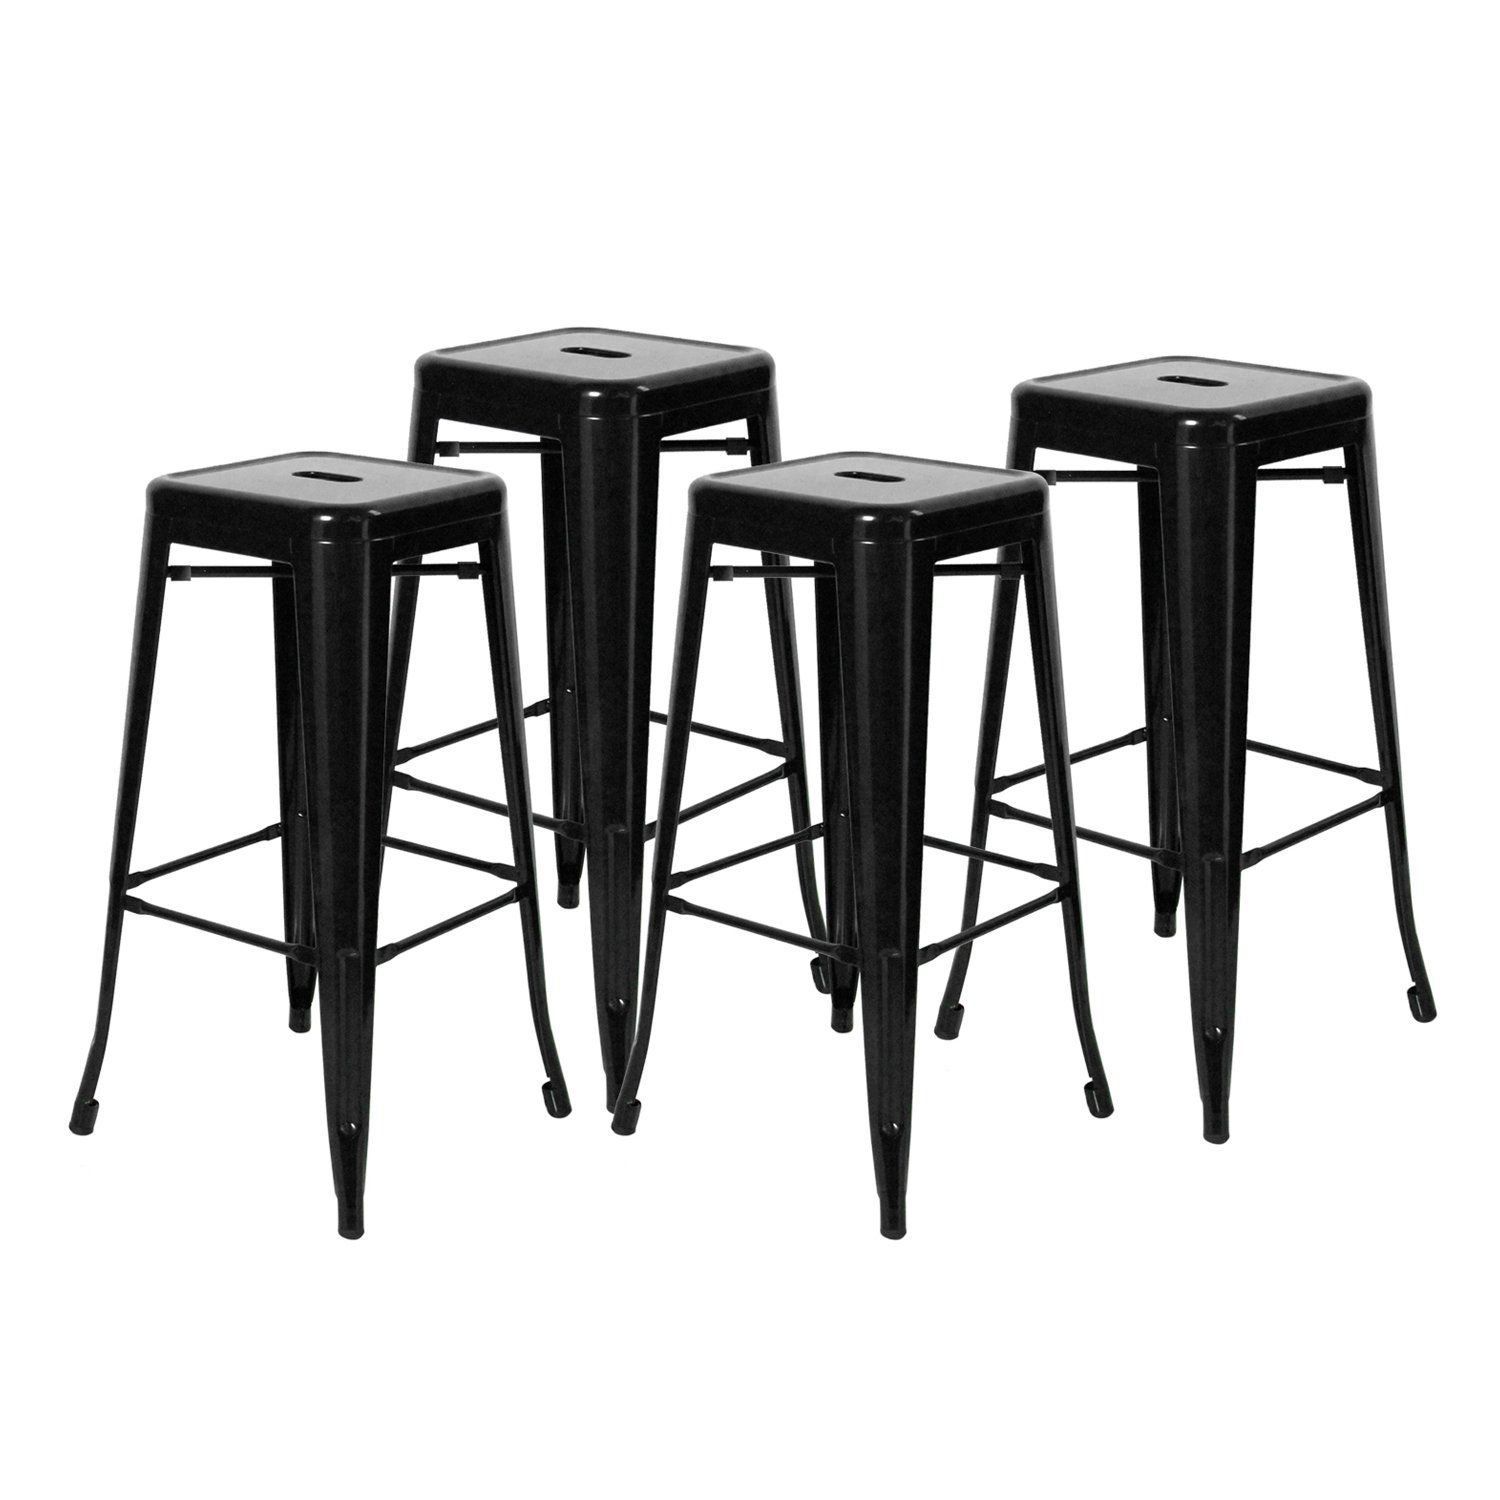 Yourlite 30 Inches Industrial Chair High Backless Indooroutdoor Barstool With Square Cushion Seat Metal Counter Stools Pa Metal Counter Stools Stool Bar Stools